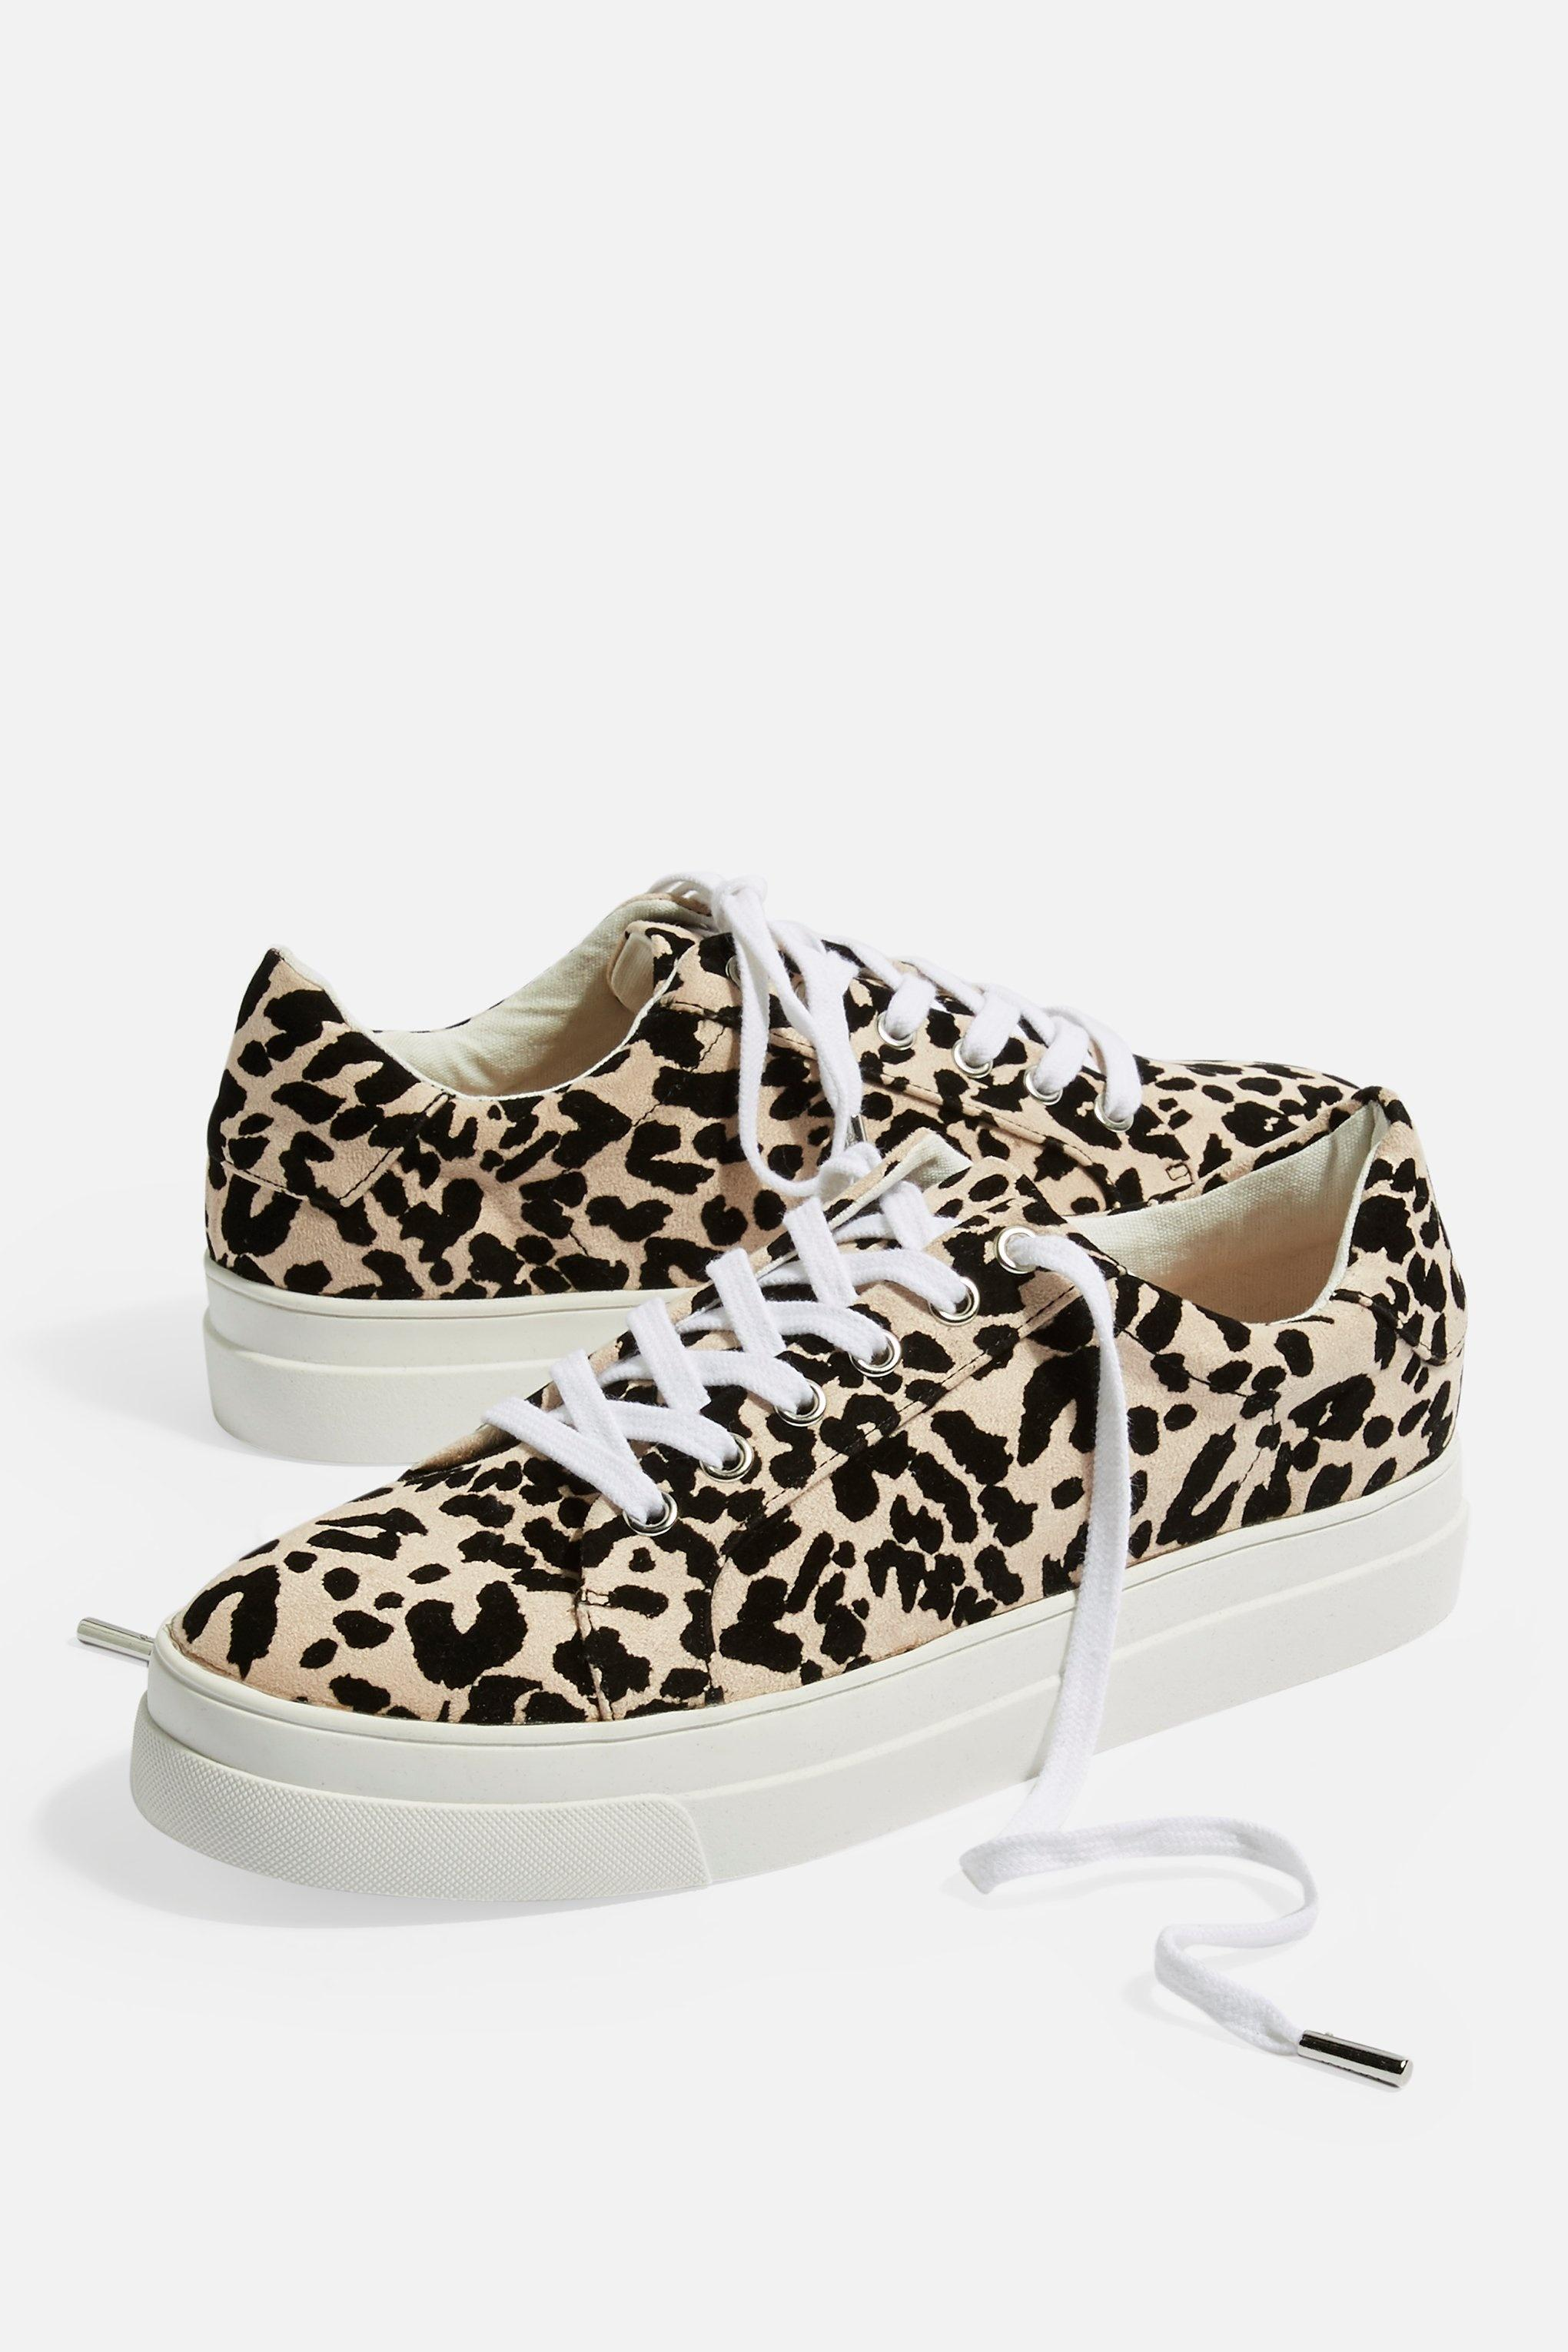 TOPSHOP Candy Lace Up Trainers - Lyst